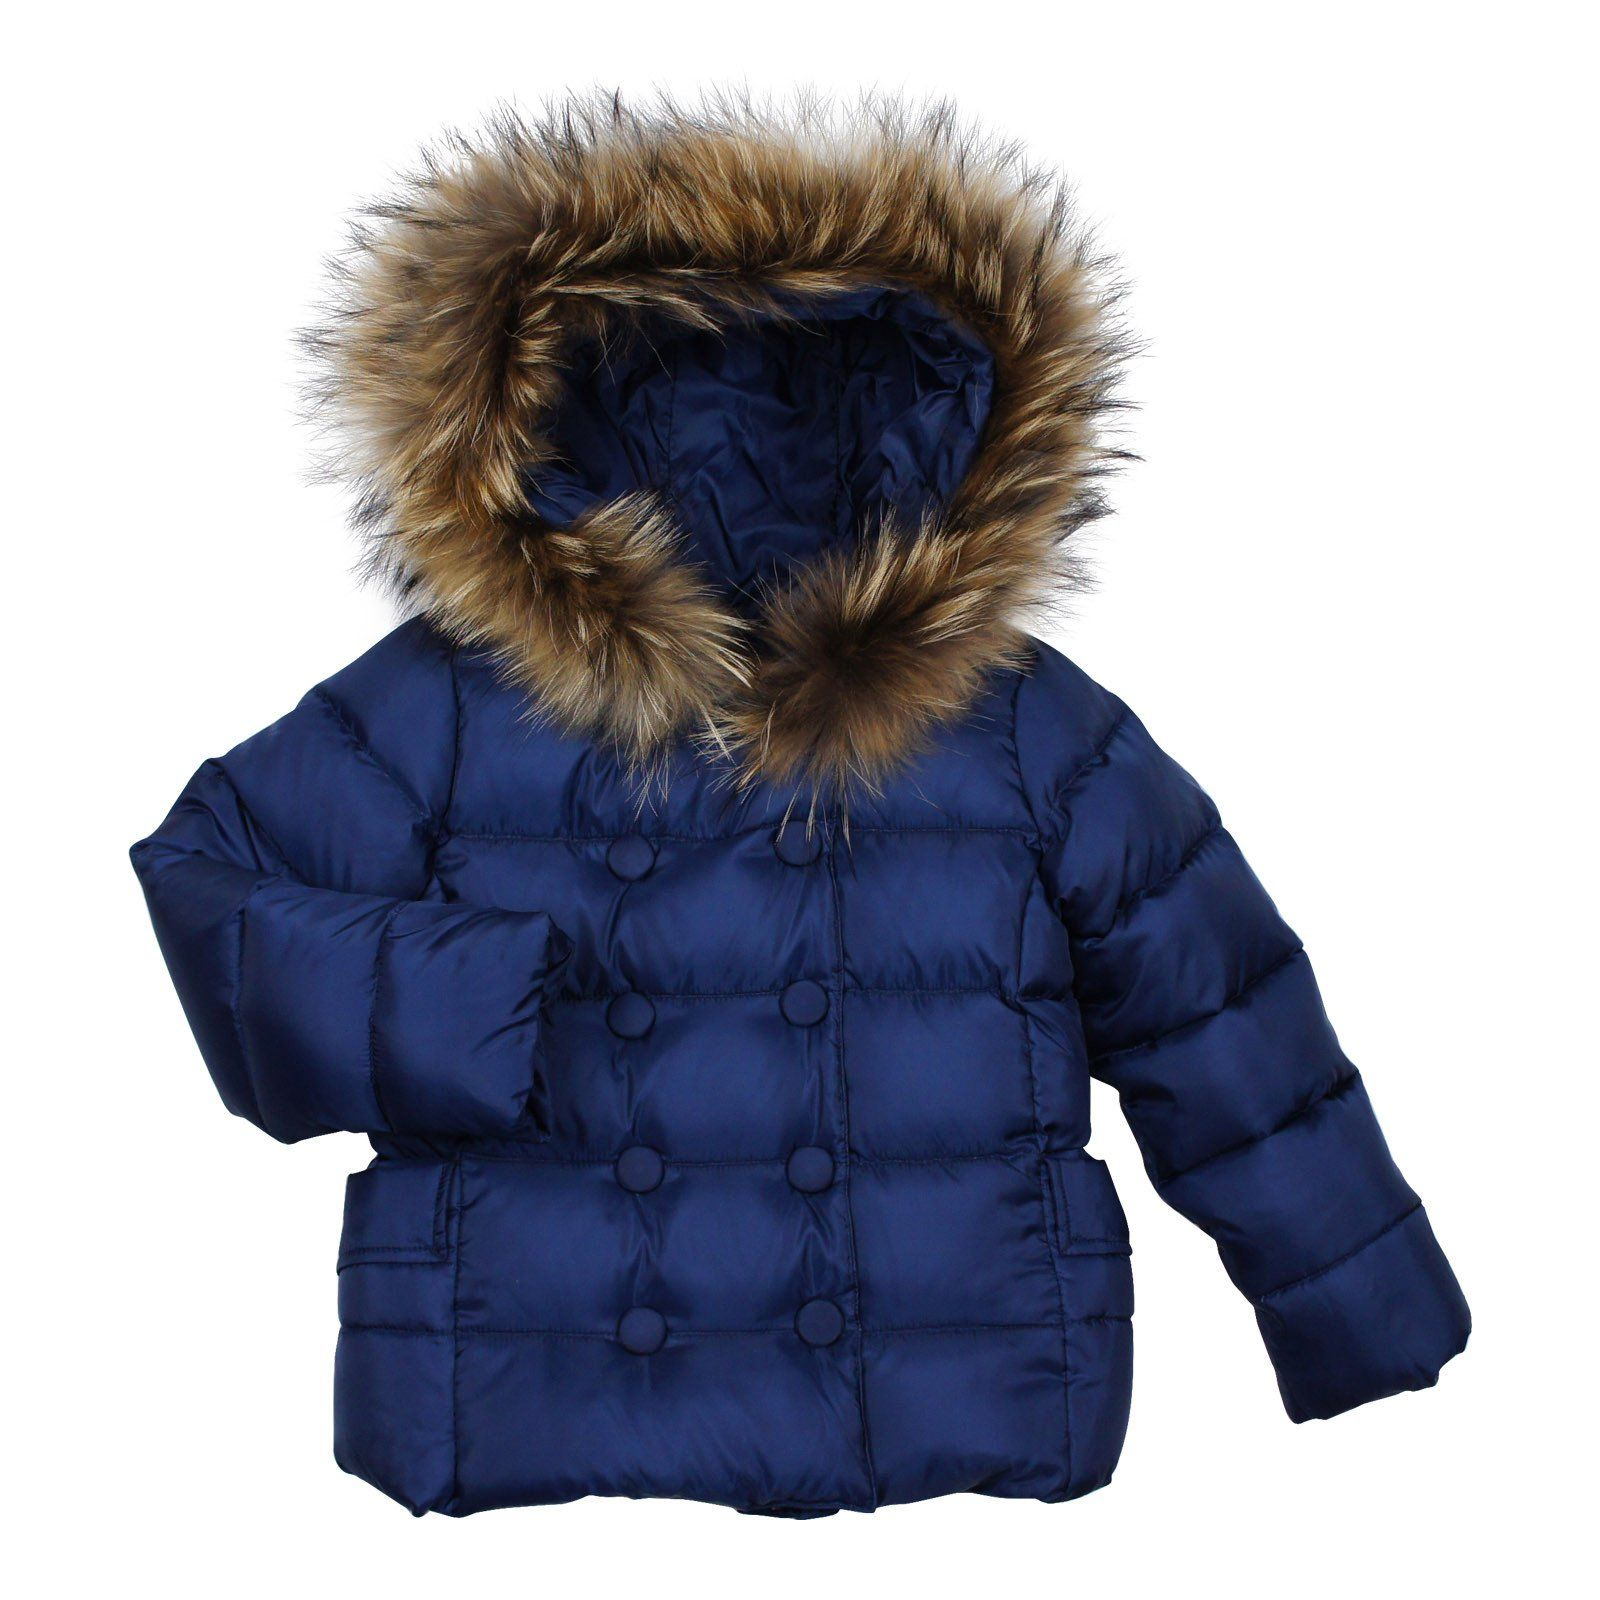 6206780b7 Lili Gaufrette Navy Blue Down Filled Jacket | Holiday Outerwear ...